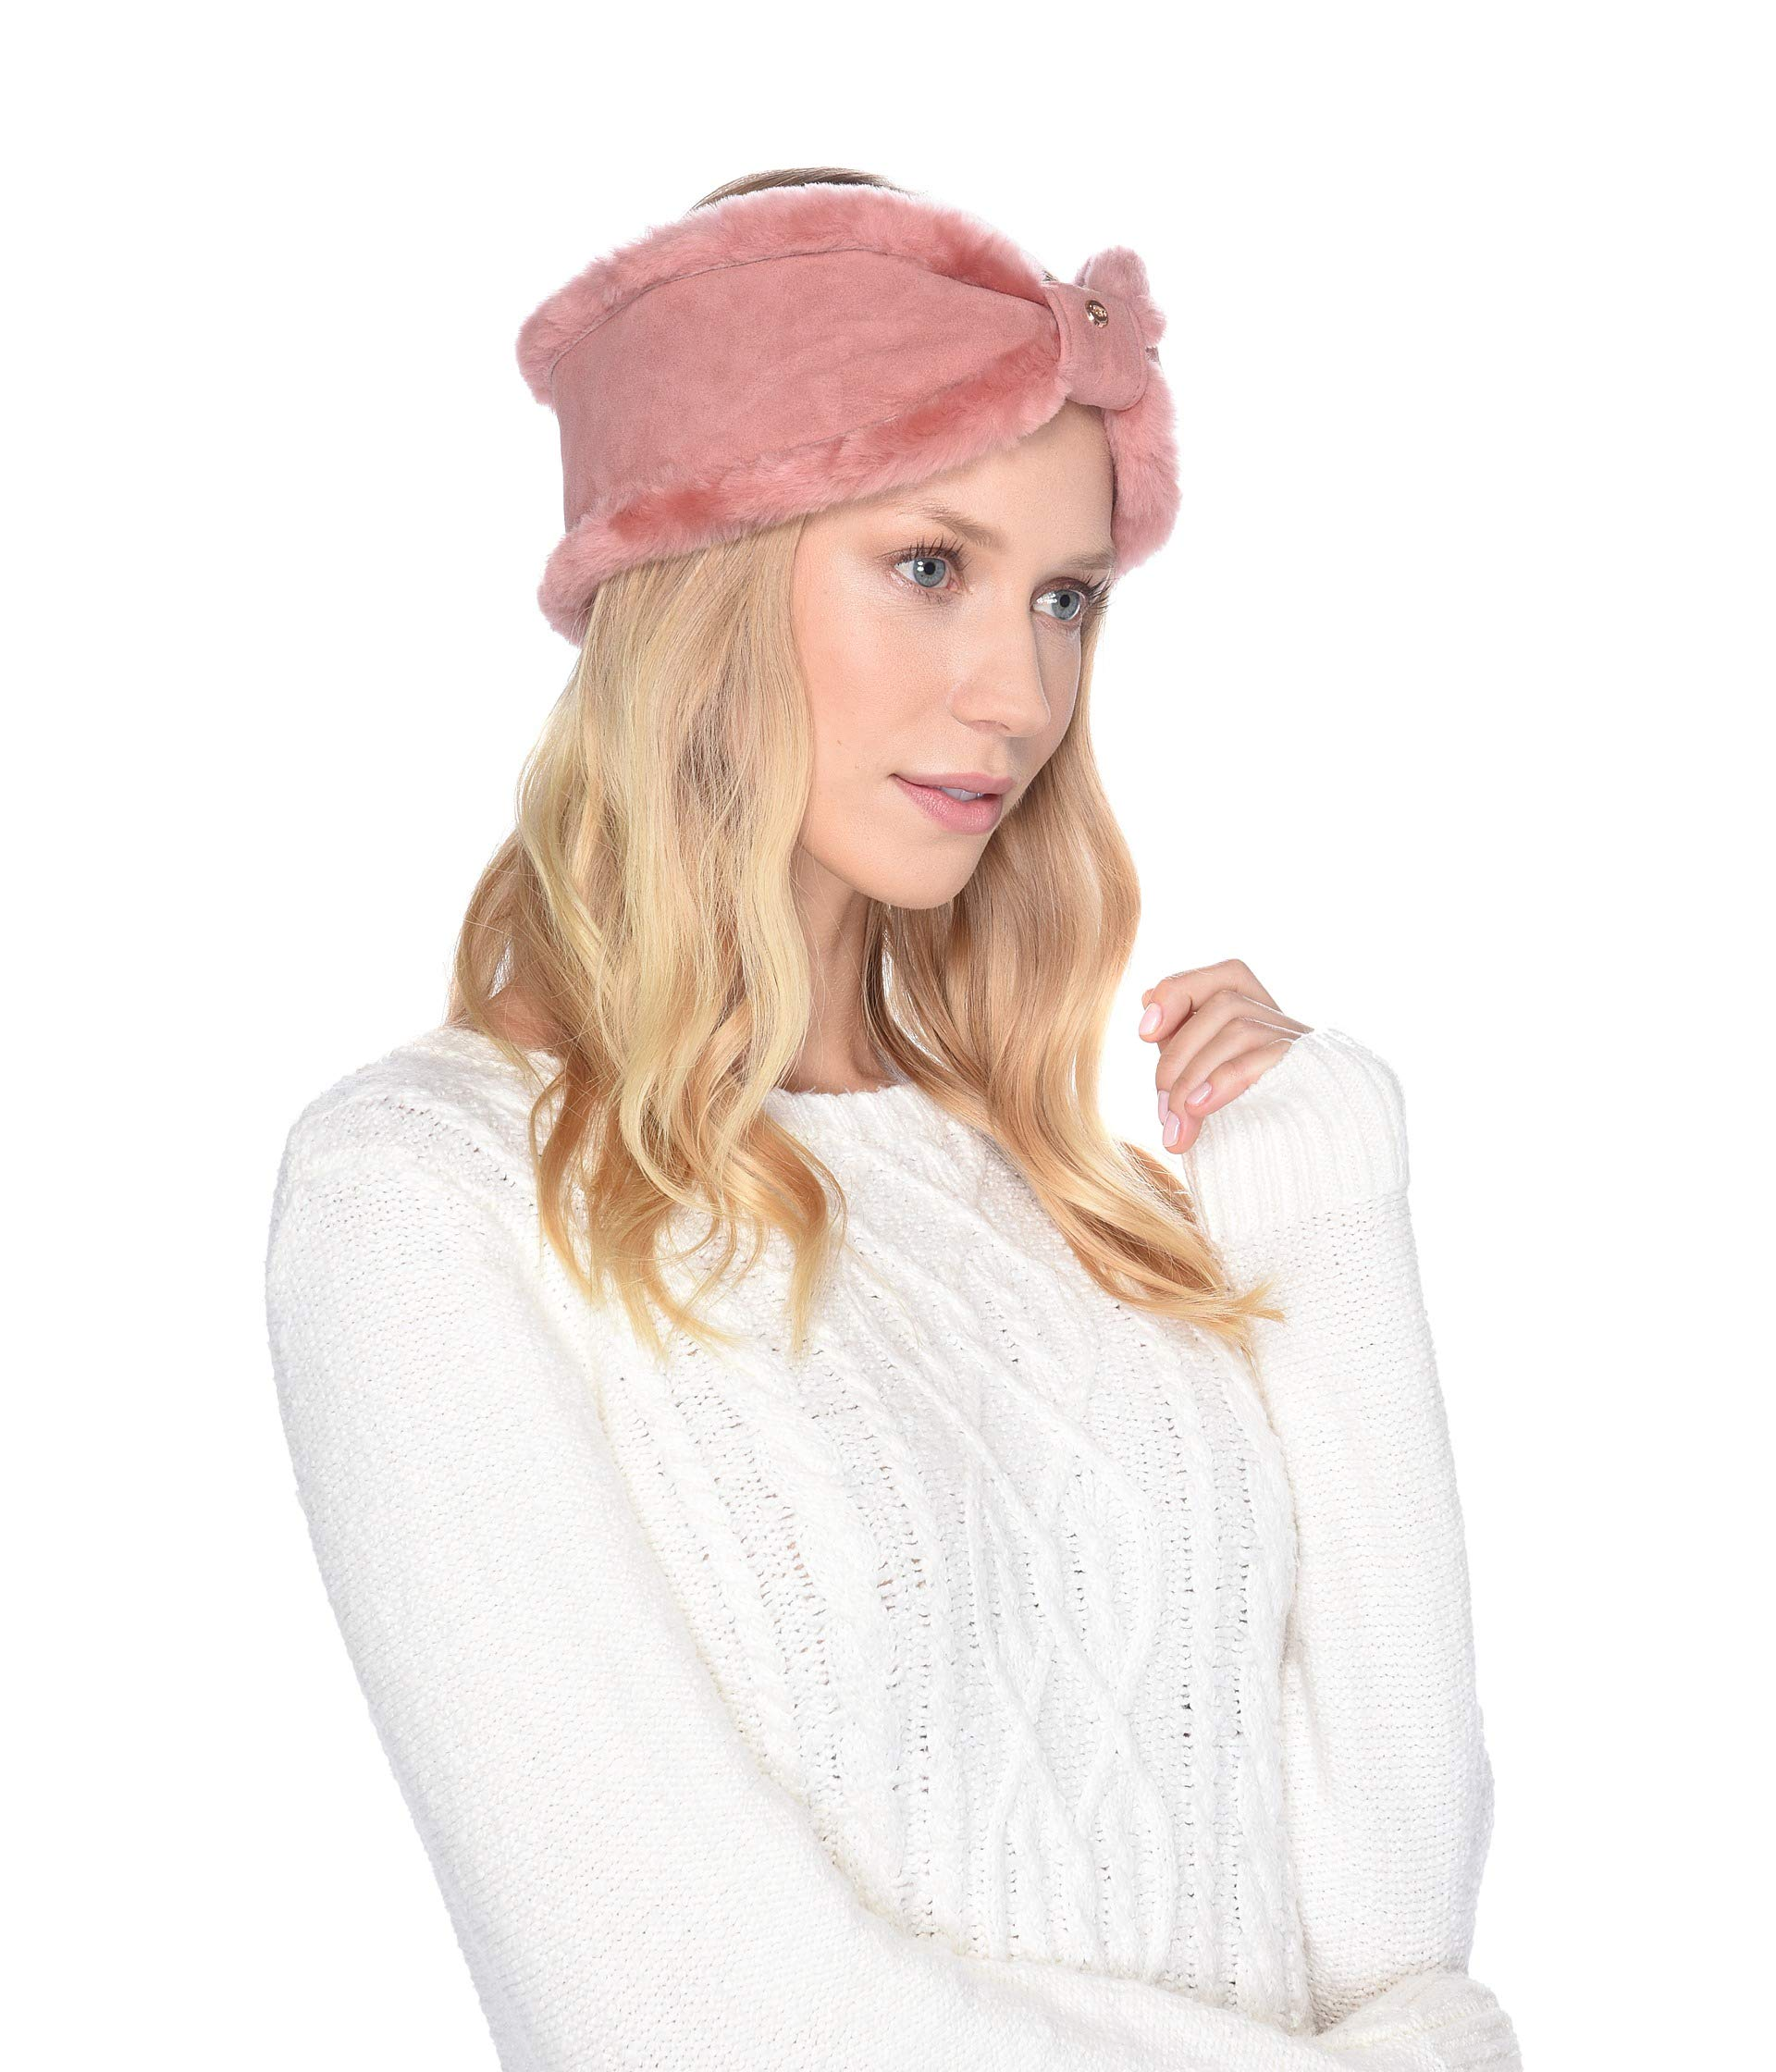 UGG Women's Bow Water Resistant Sheepskin Headband Lantana Pink One Size by UGG